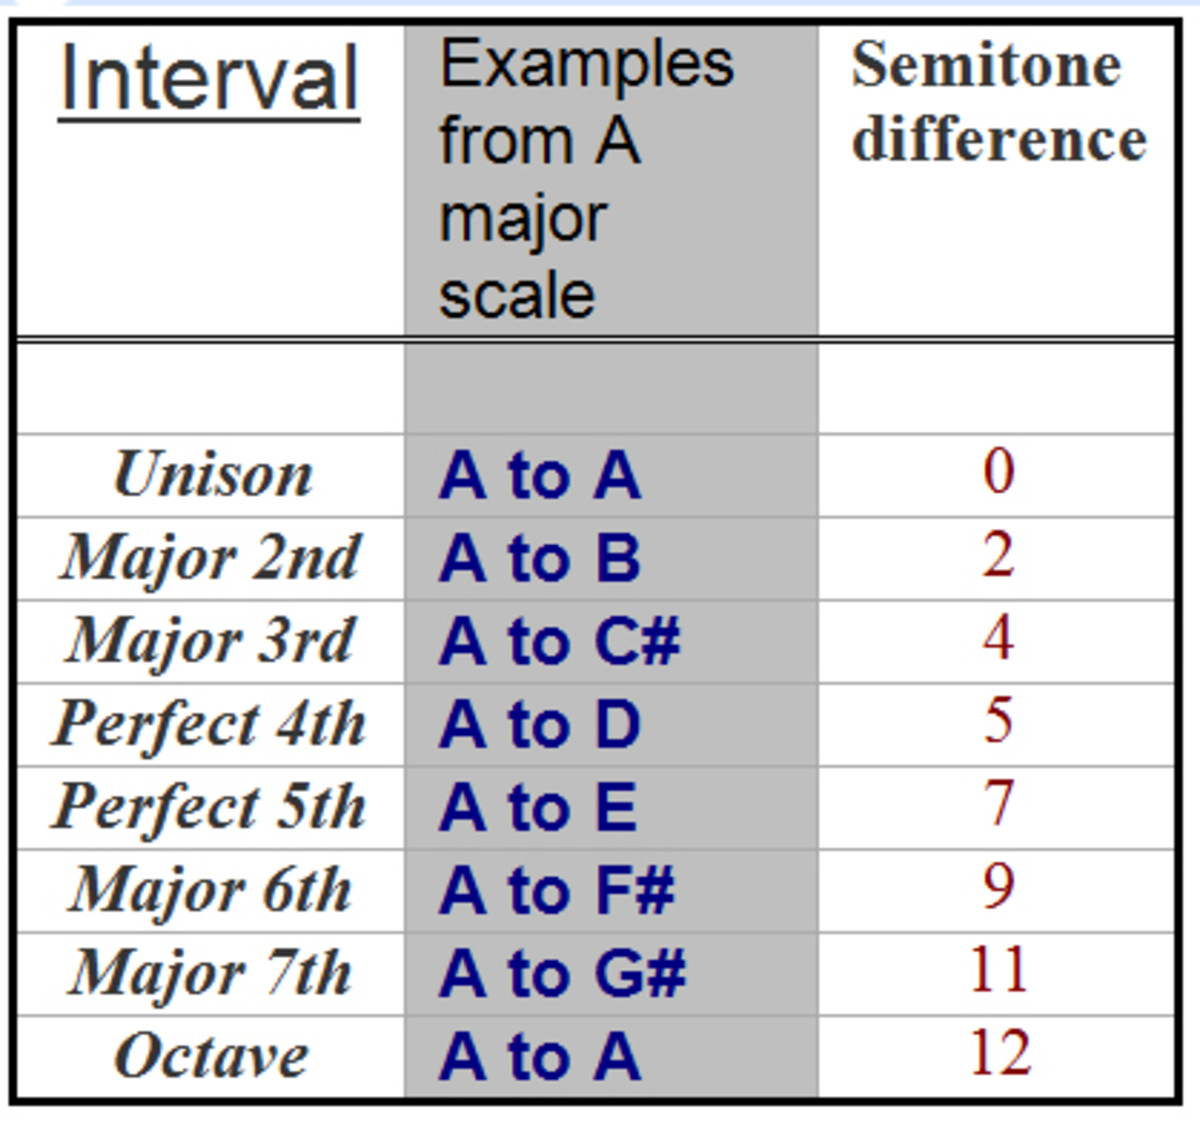 Intervals from the key note to each note of the A major scale. All major scales have exactly the same set of intervals.